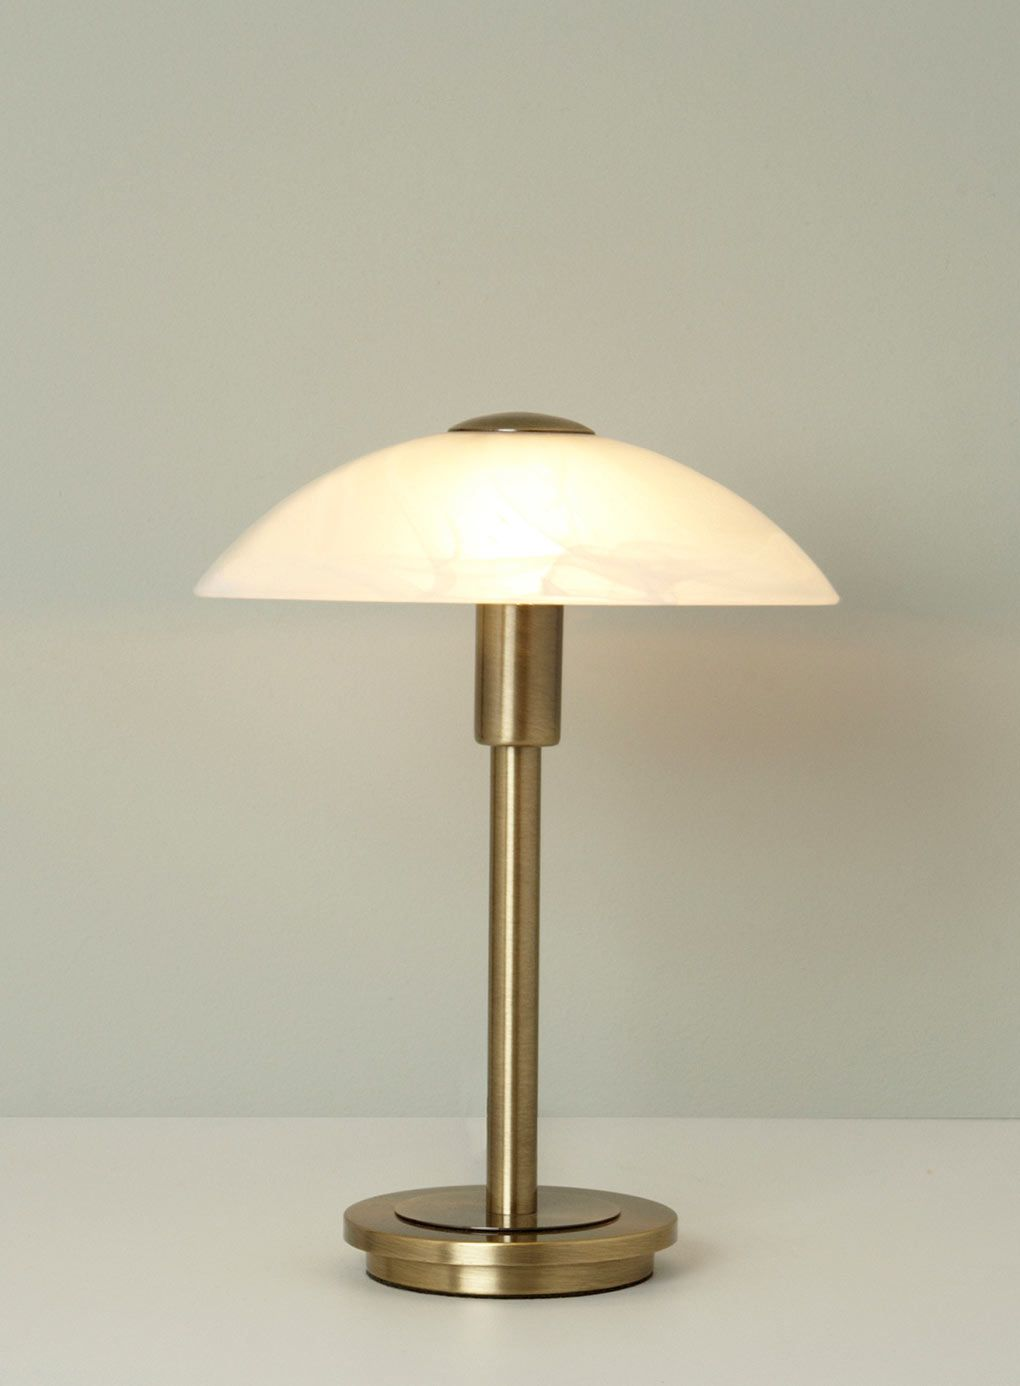 Archie Touch Lamp Bhs £15? Deco Lamp